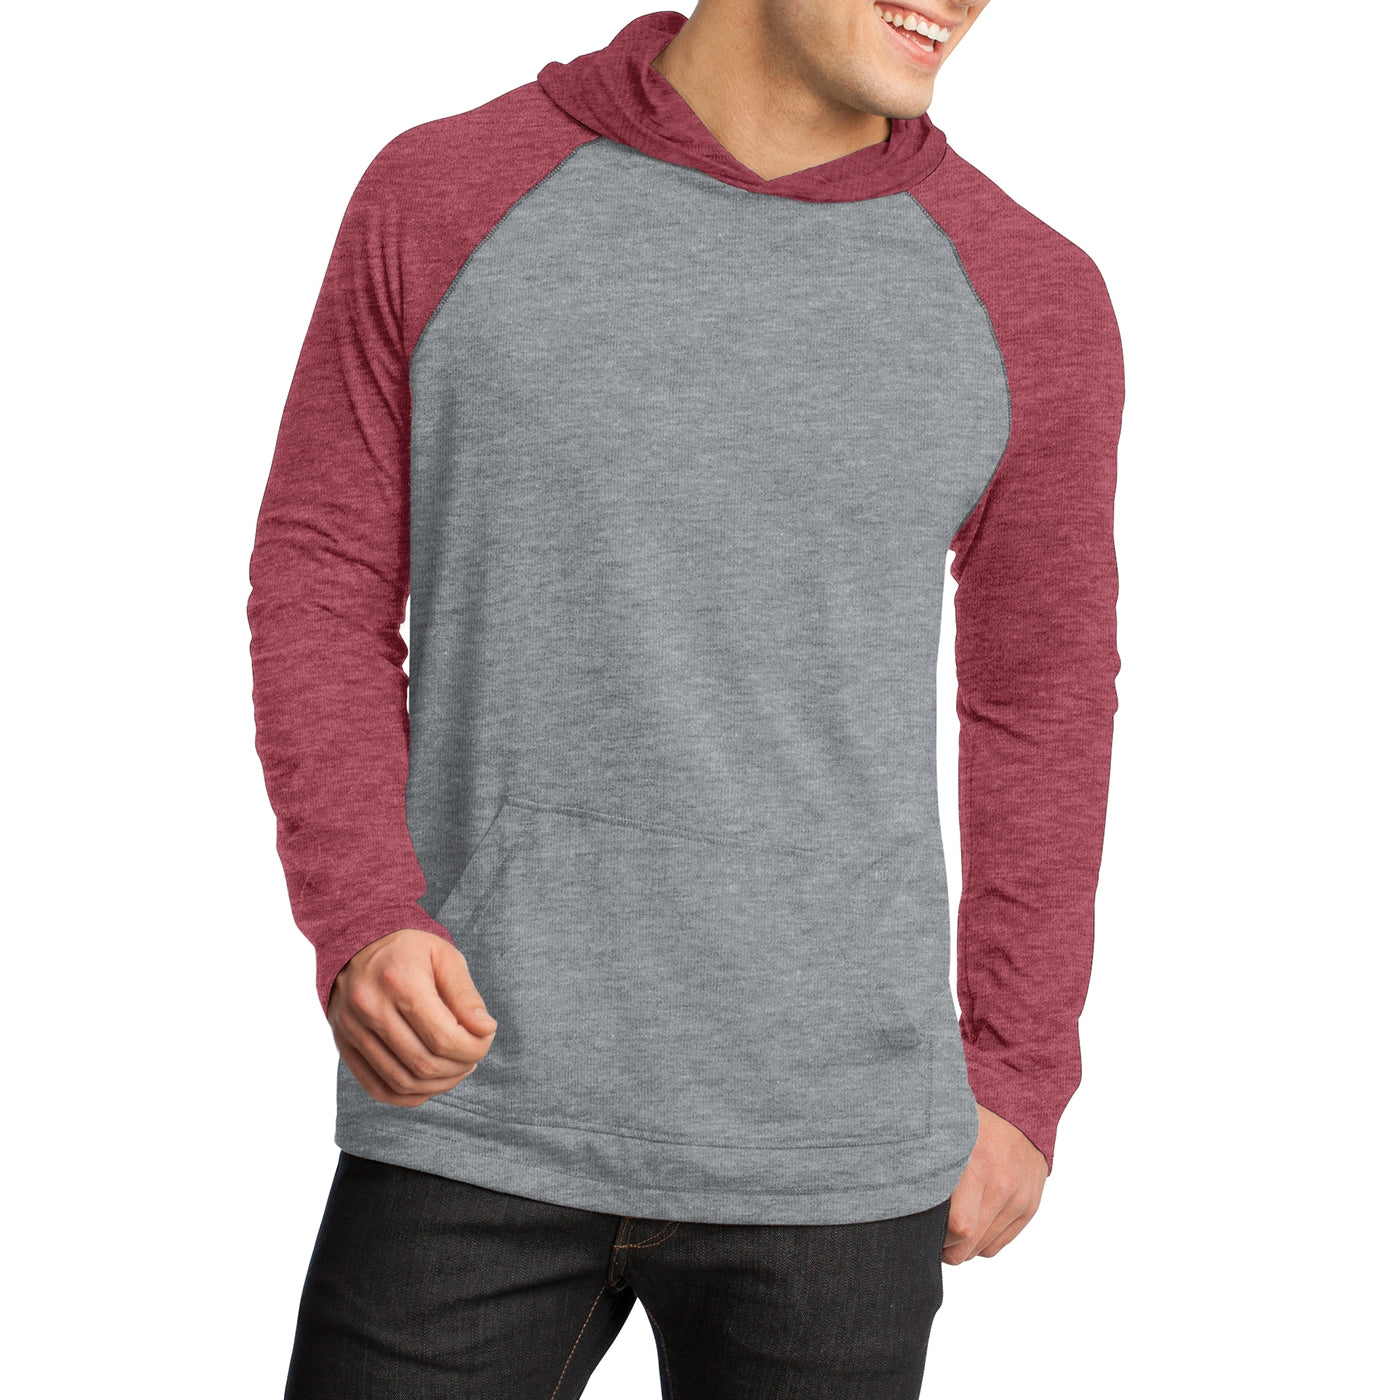 Men's Young 50/50 Raglan Hoodie - Heathered Deep Red/ Heathered Nickel